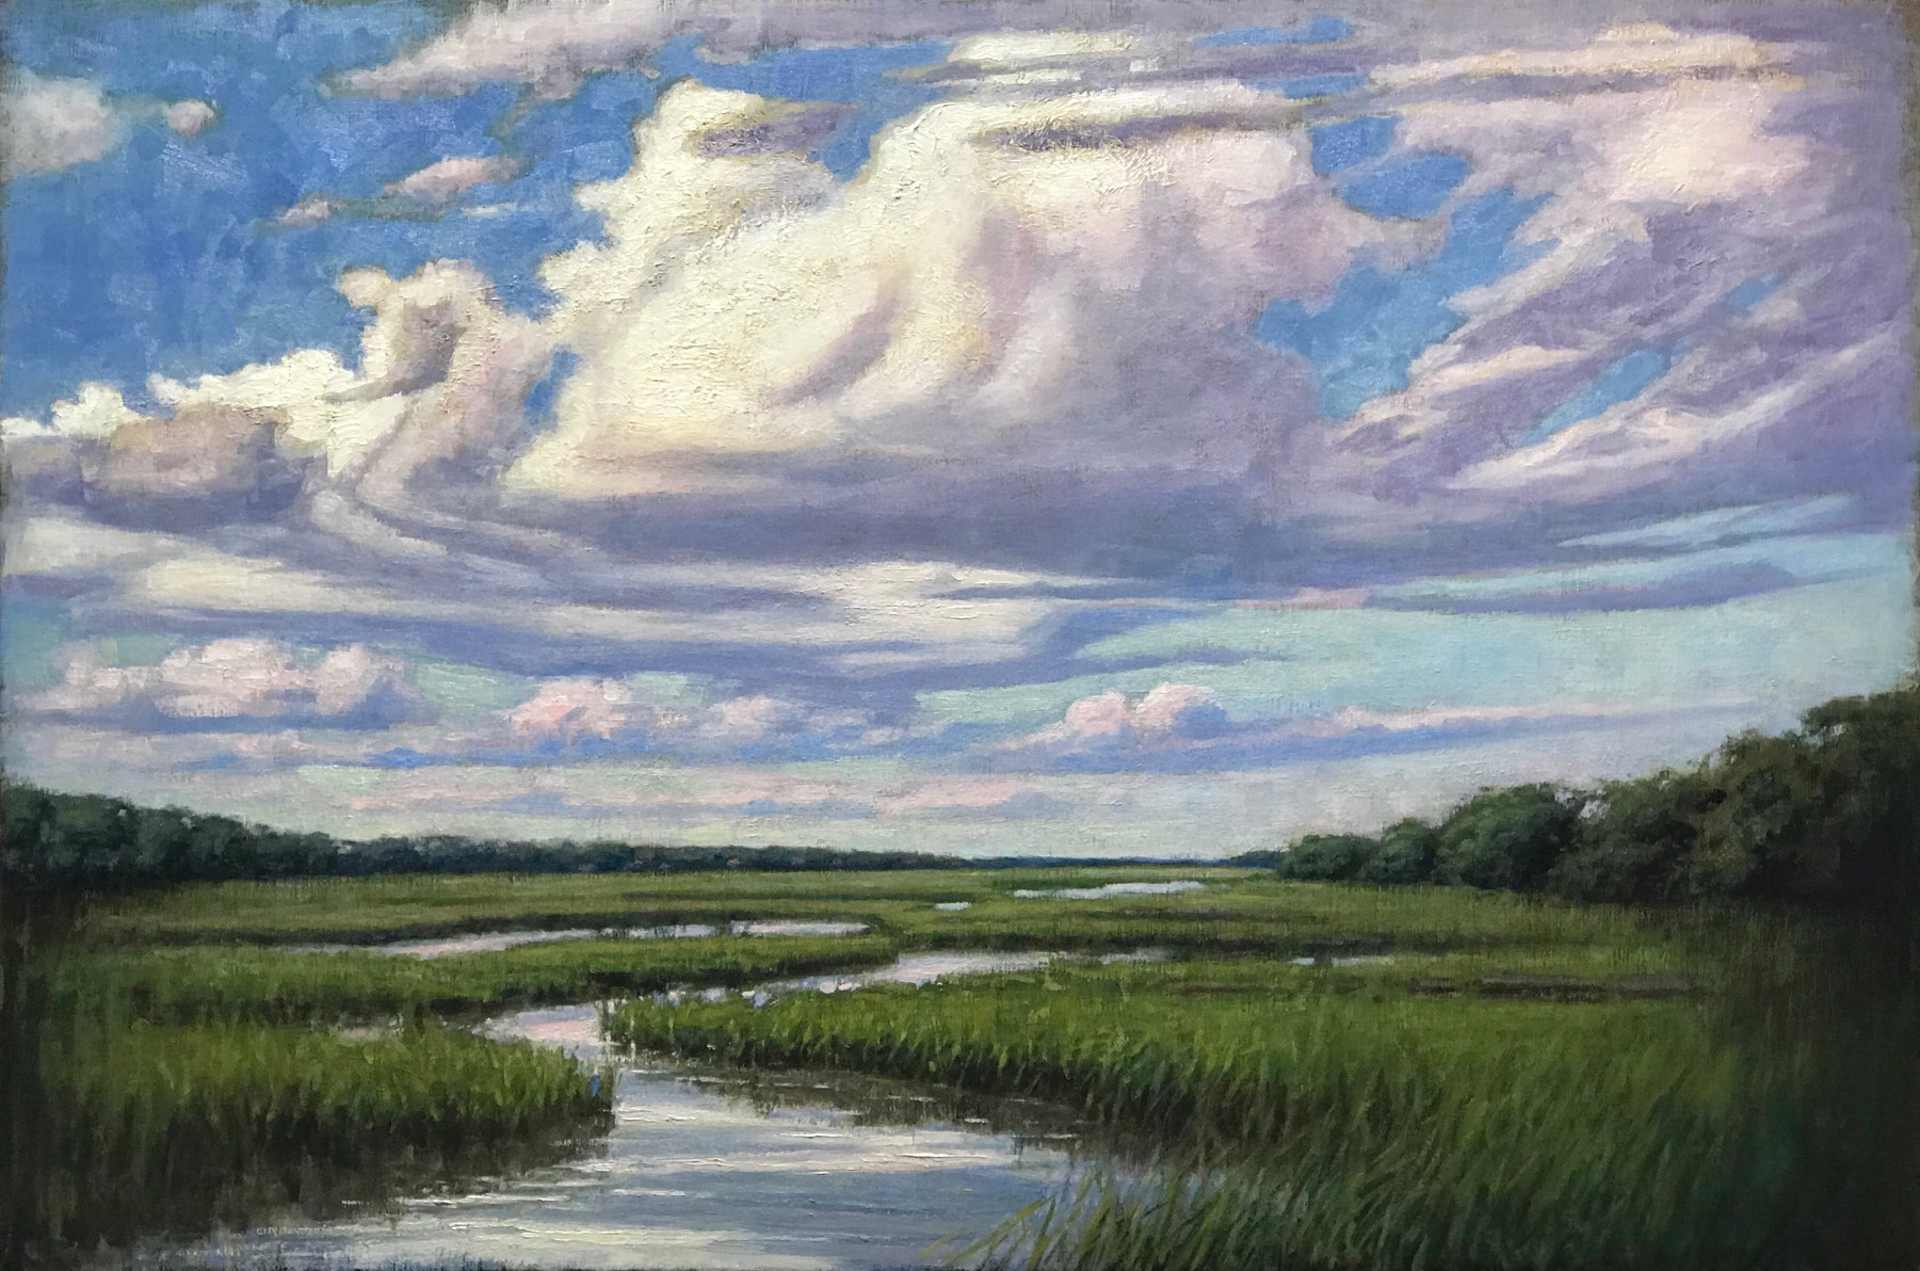 Green Marsh on a Cloudy Day by Brett Weaver